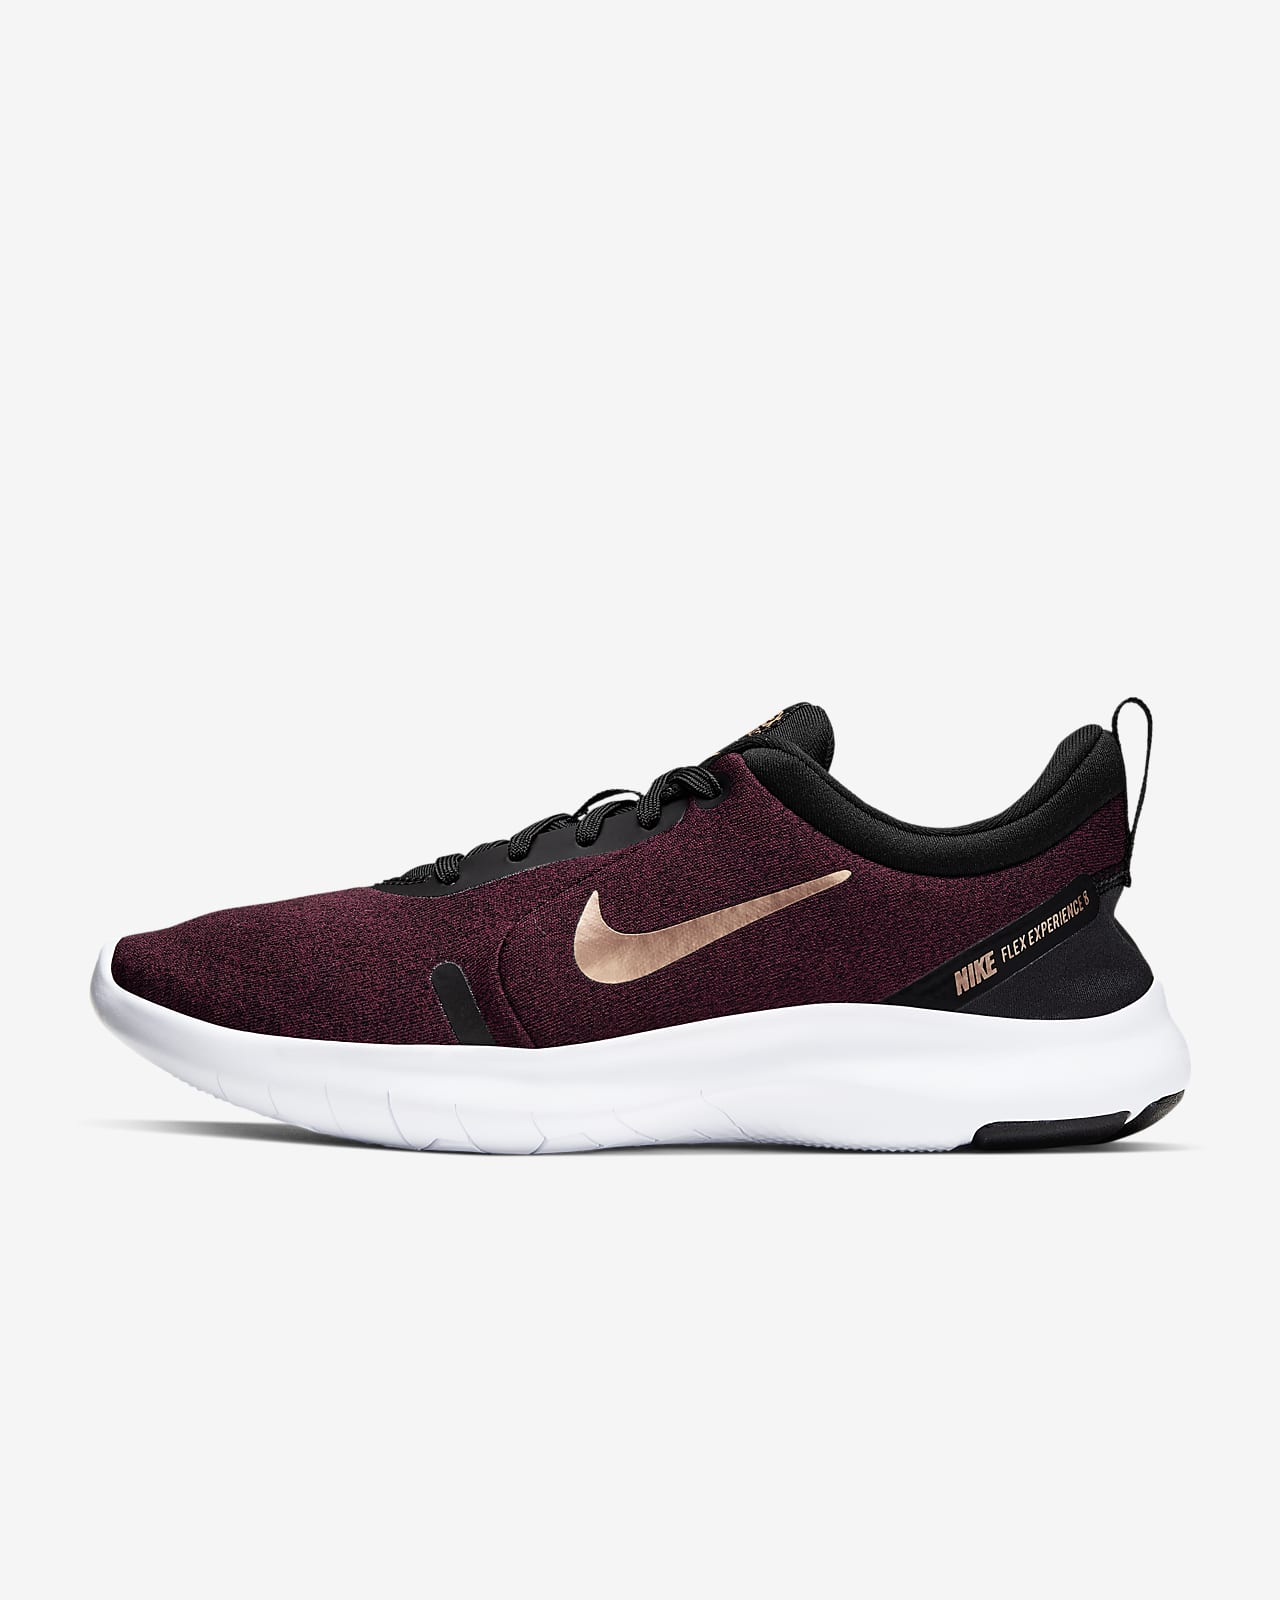 Además Admirable interferencia  Nike Flex Experience RN 8 Women's Running Shoe. Nike SG